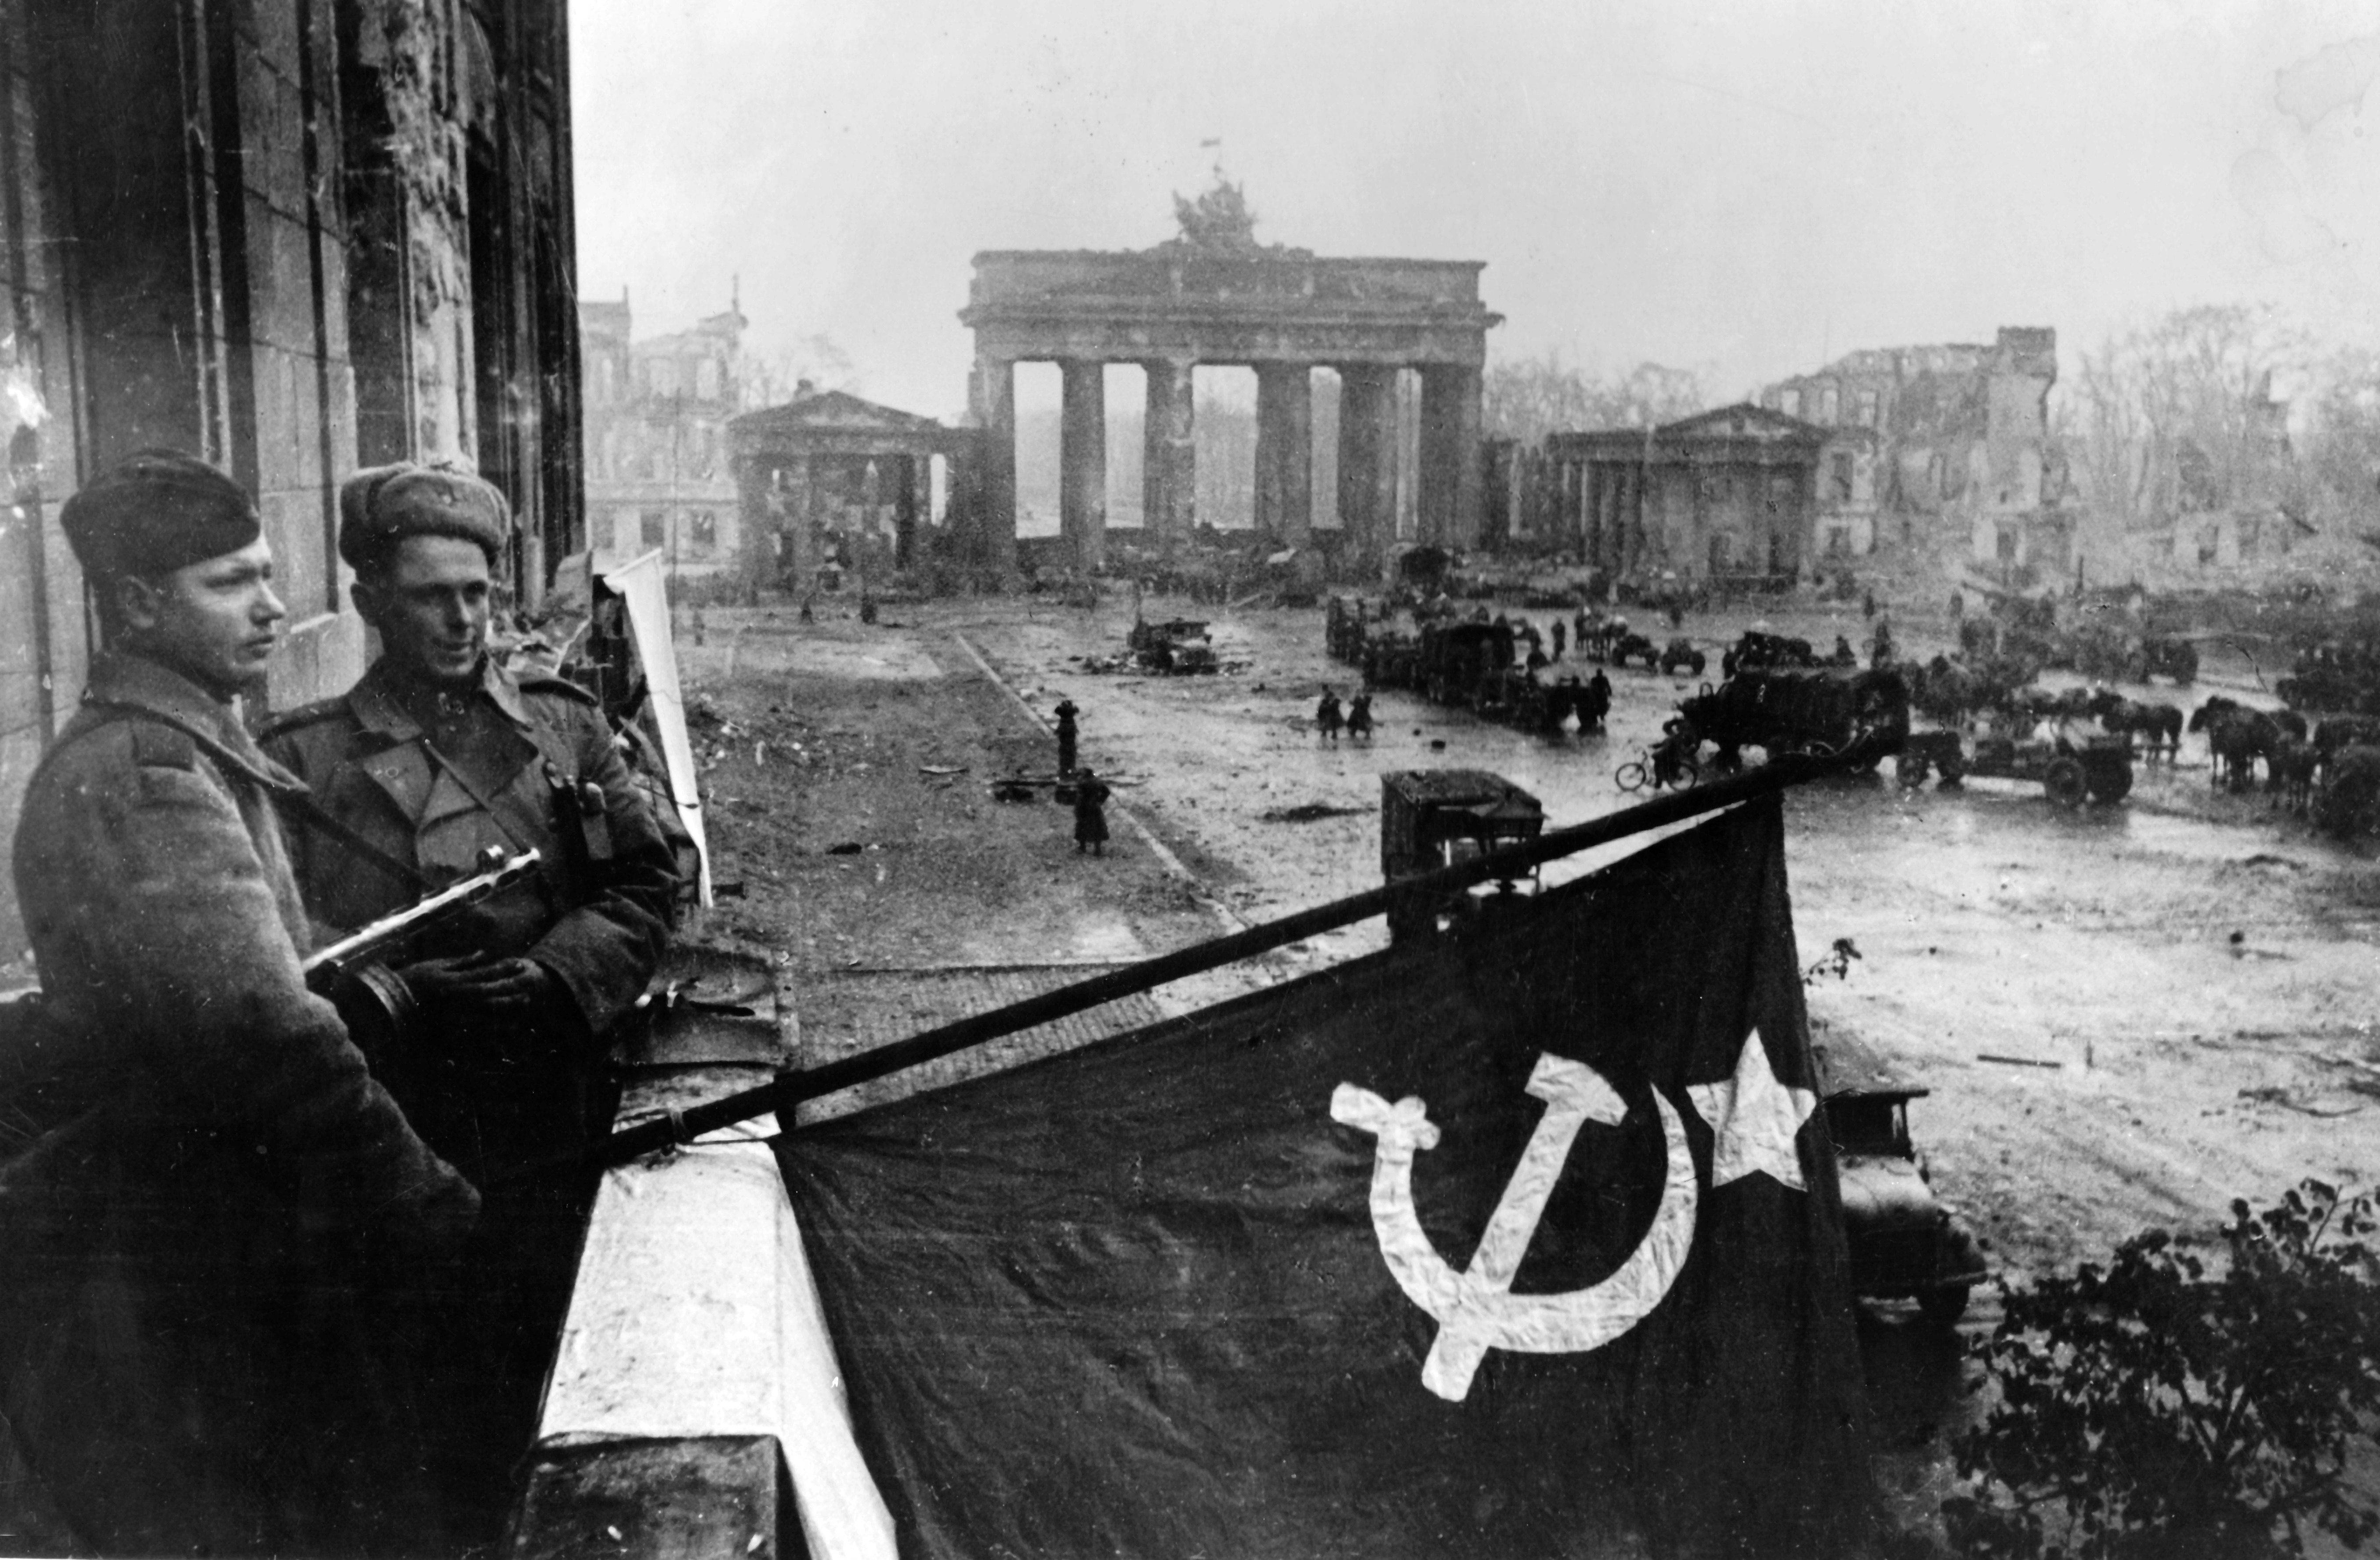 End of the war - Red Army in Berlin 1945